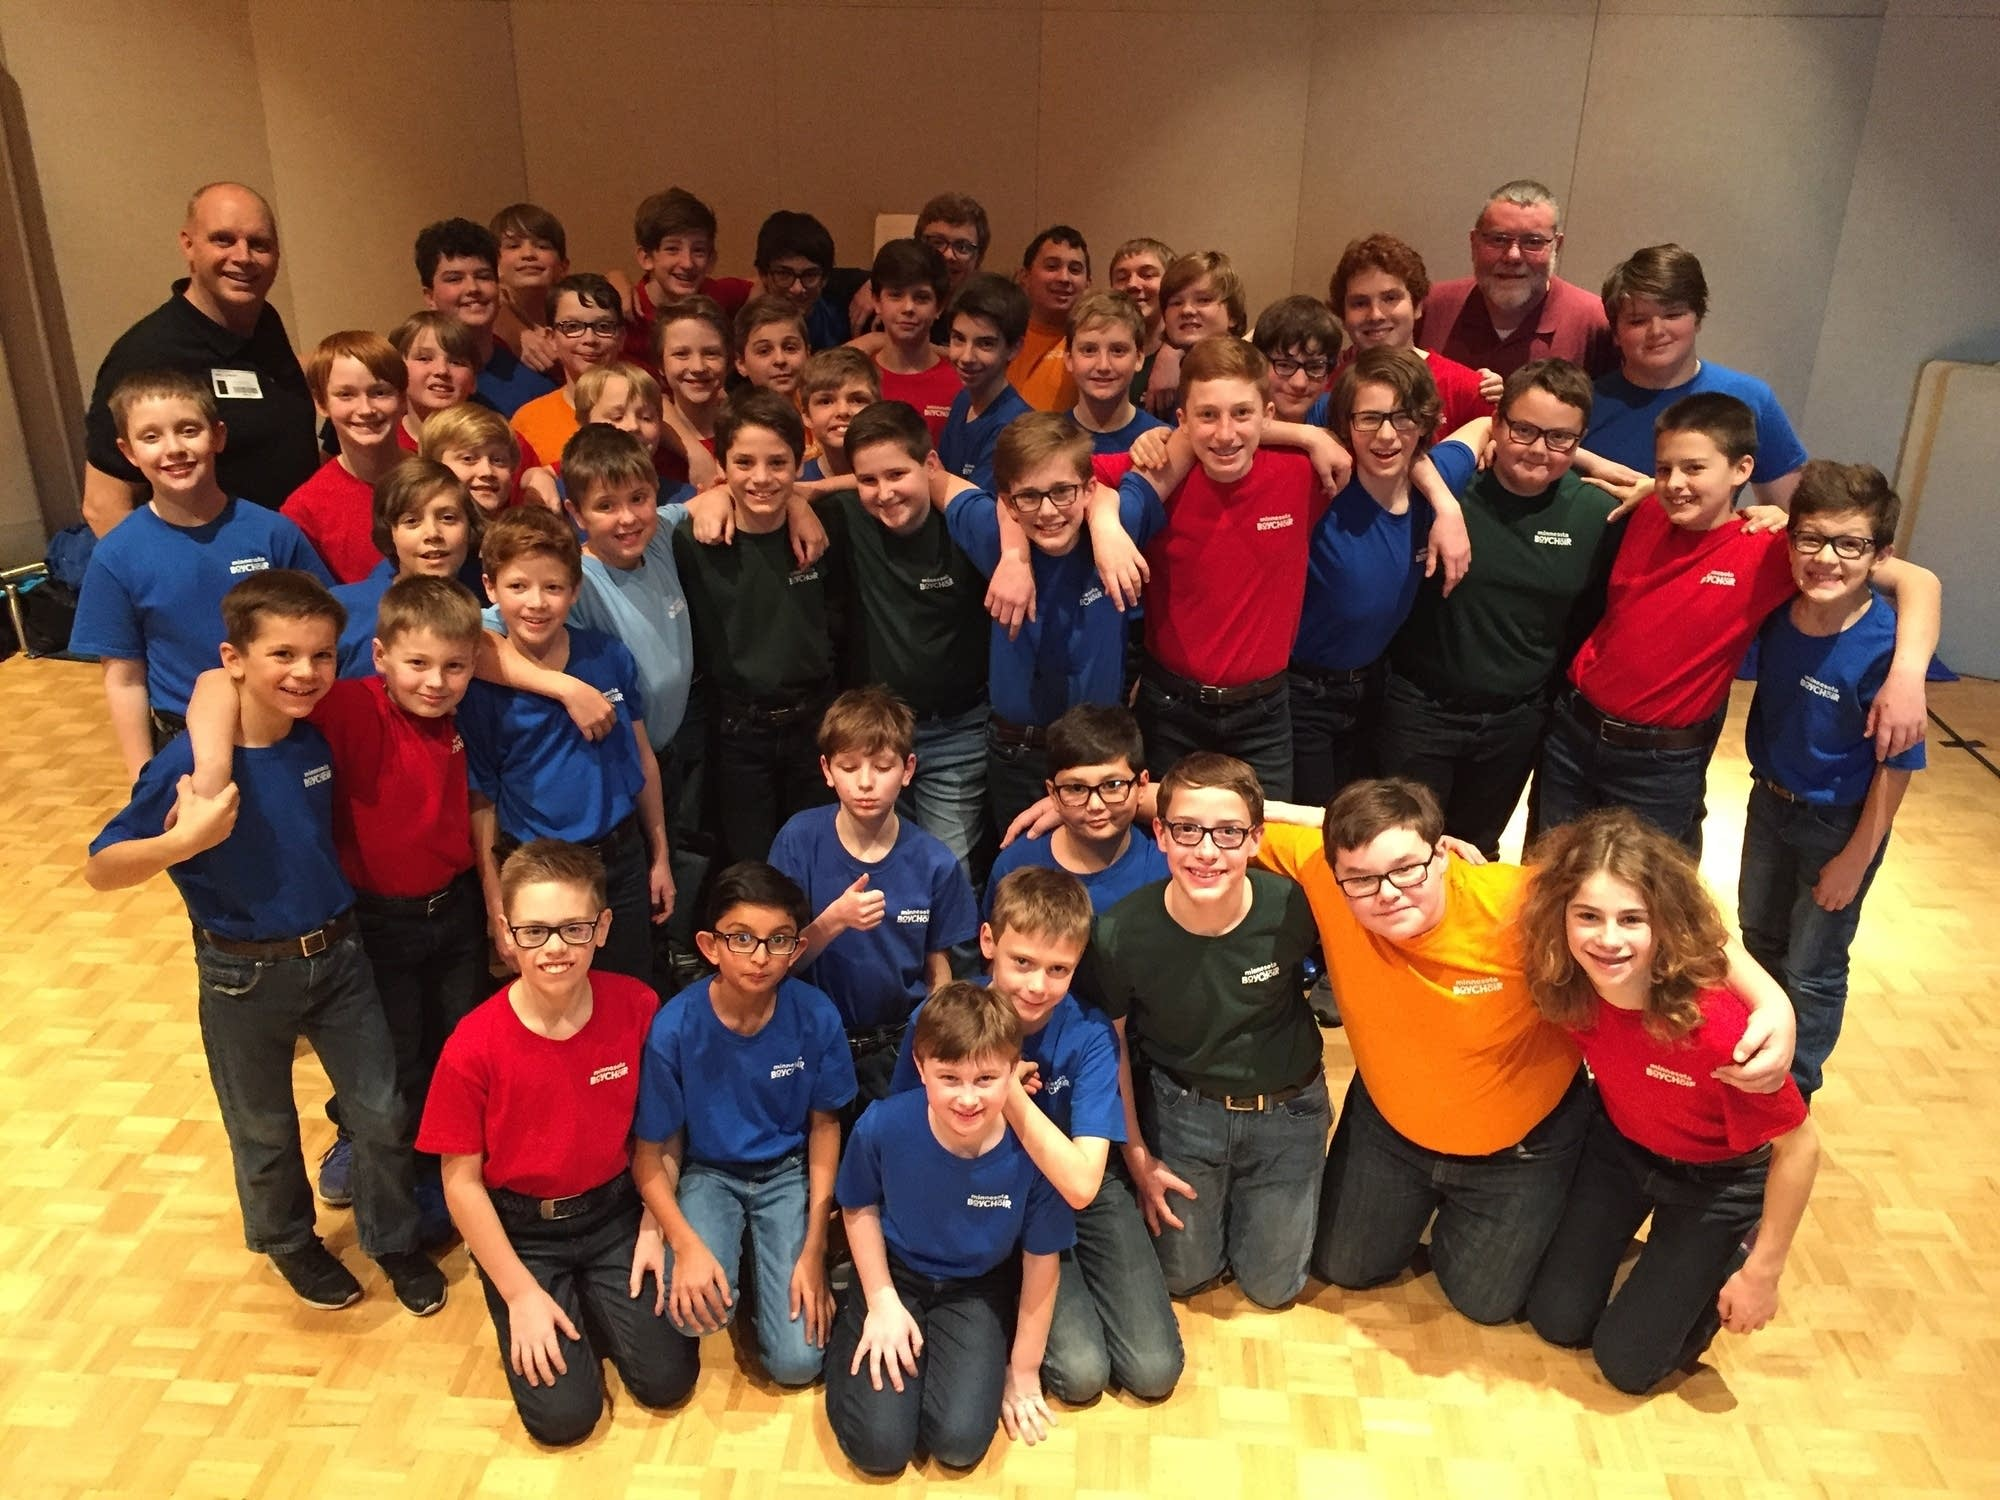 The Minnesota Boy Choir at MPR